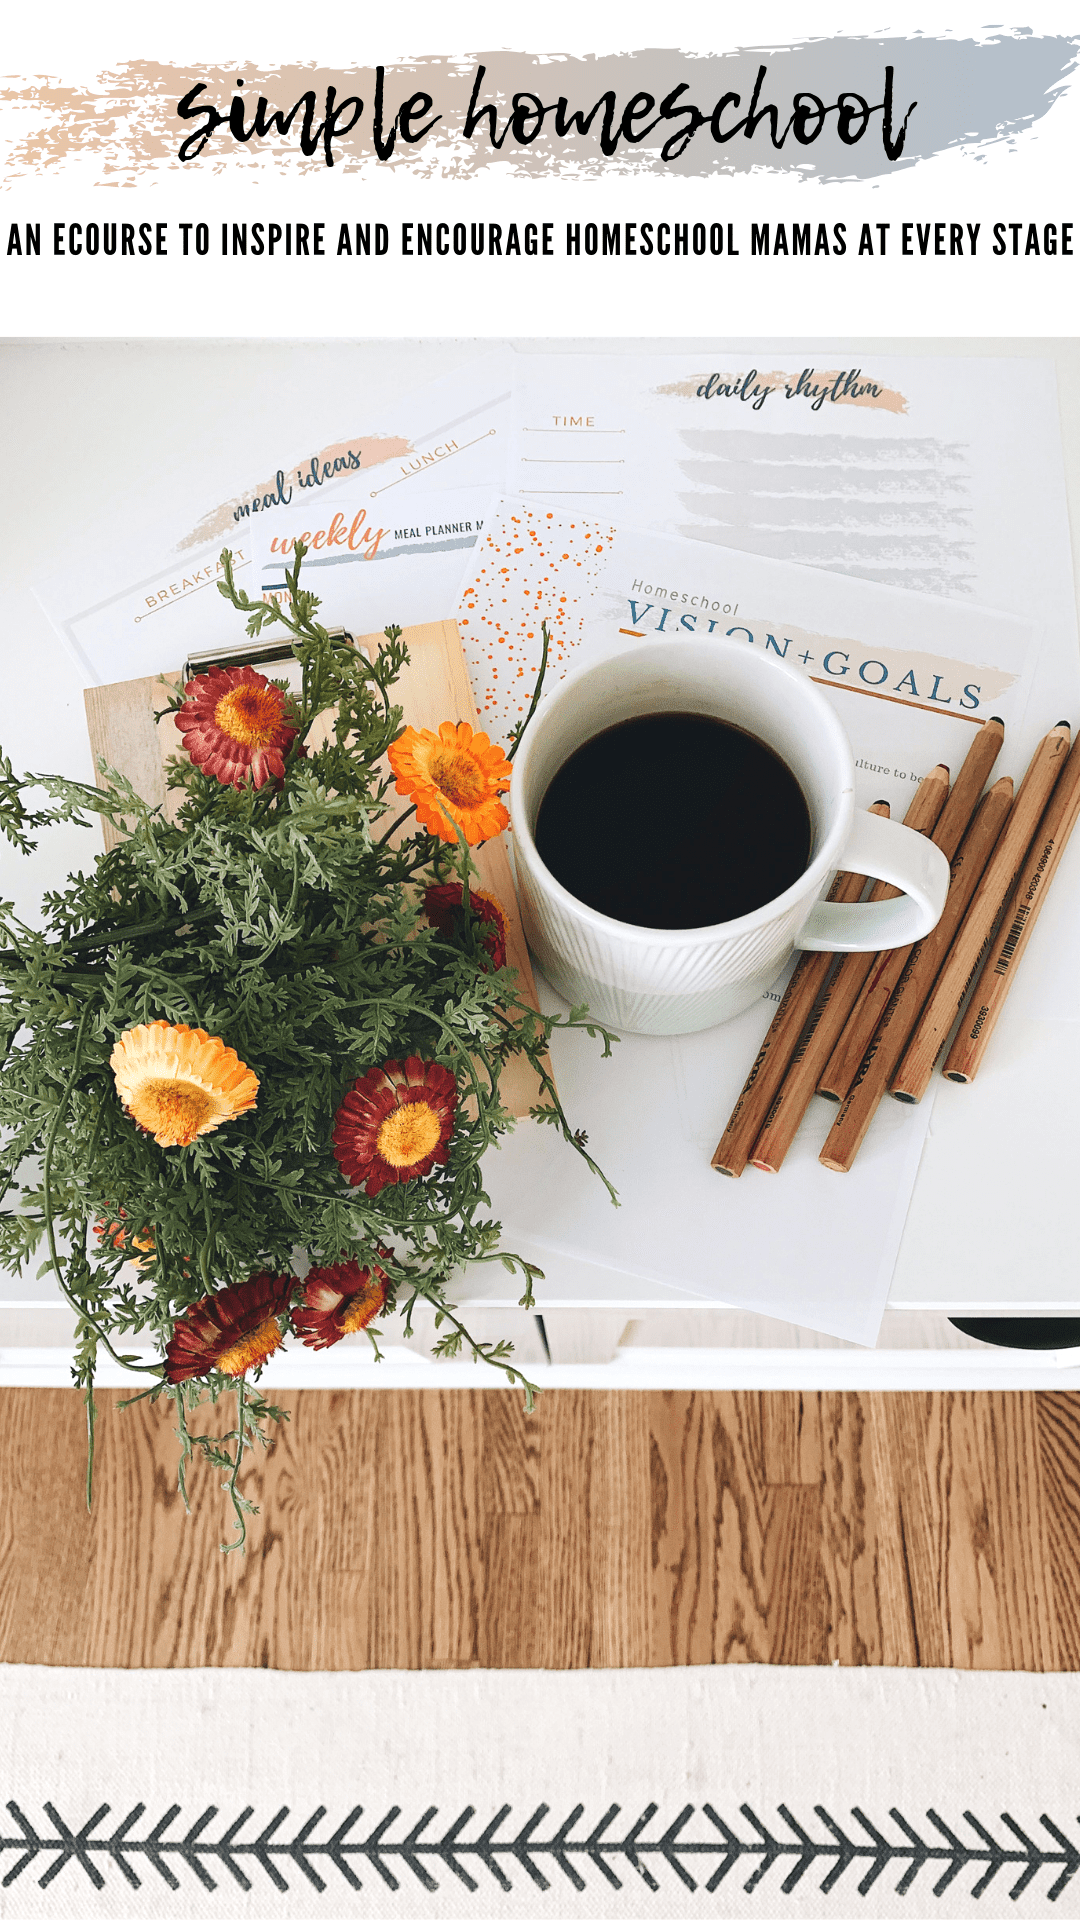 homeschooling vision and goals printable with colored pencils and coffee